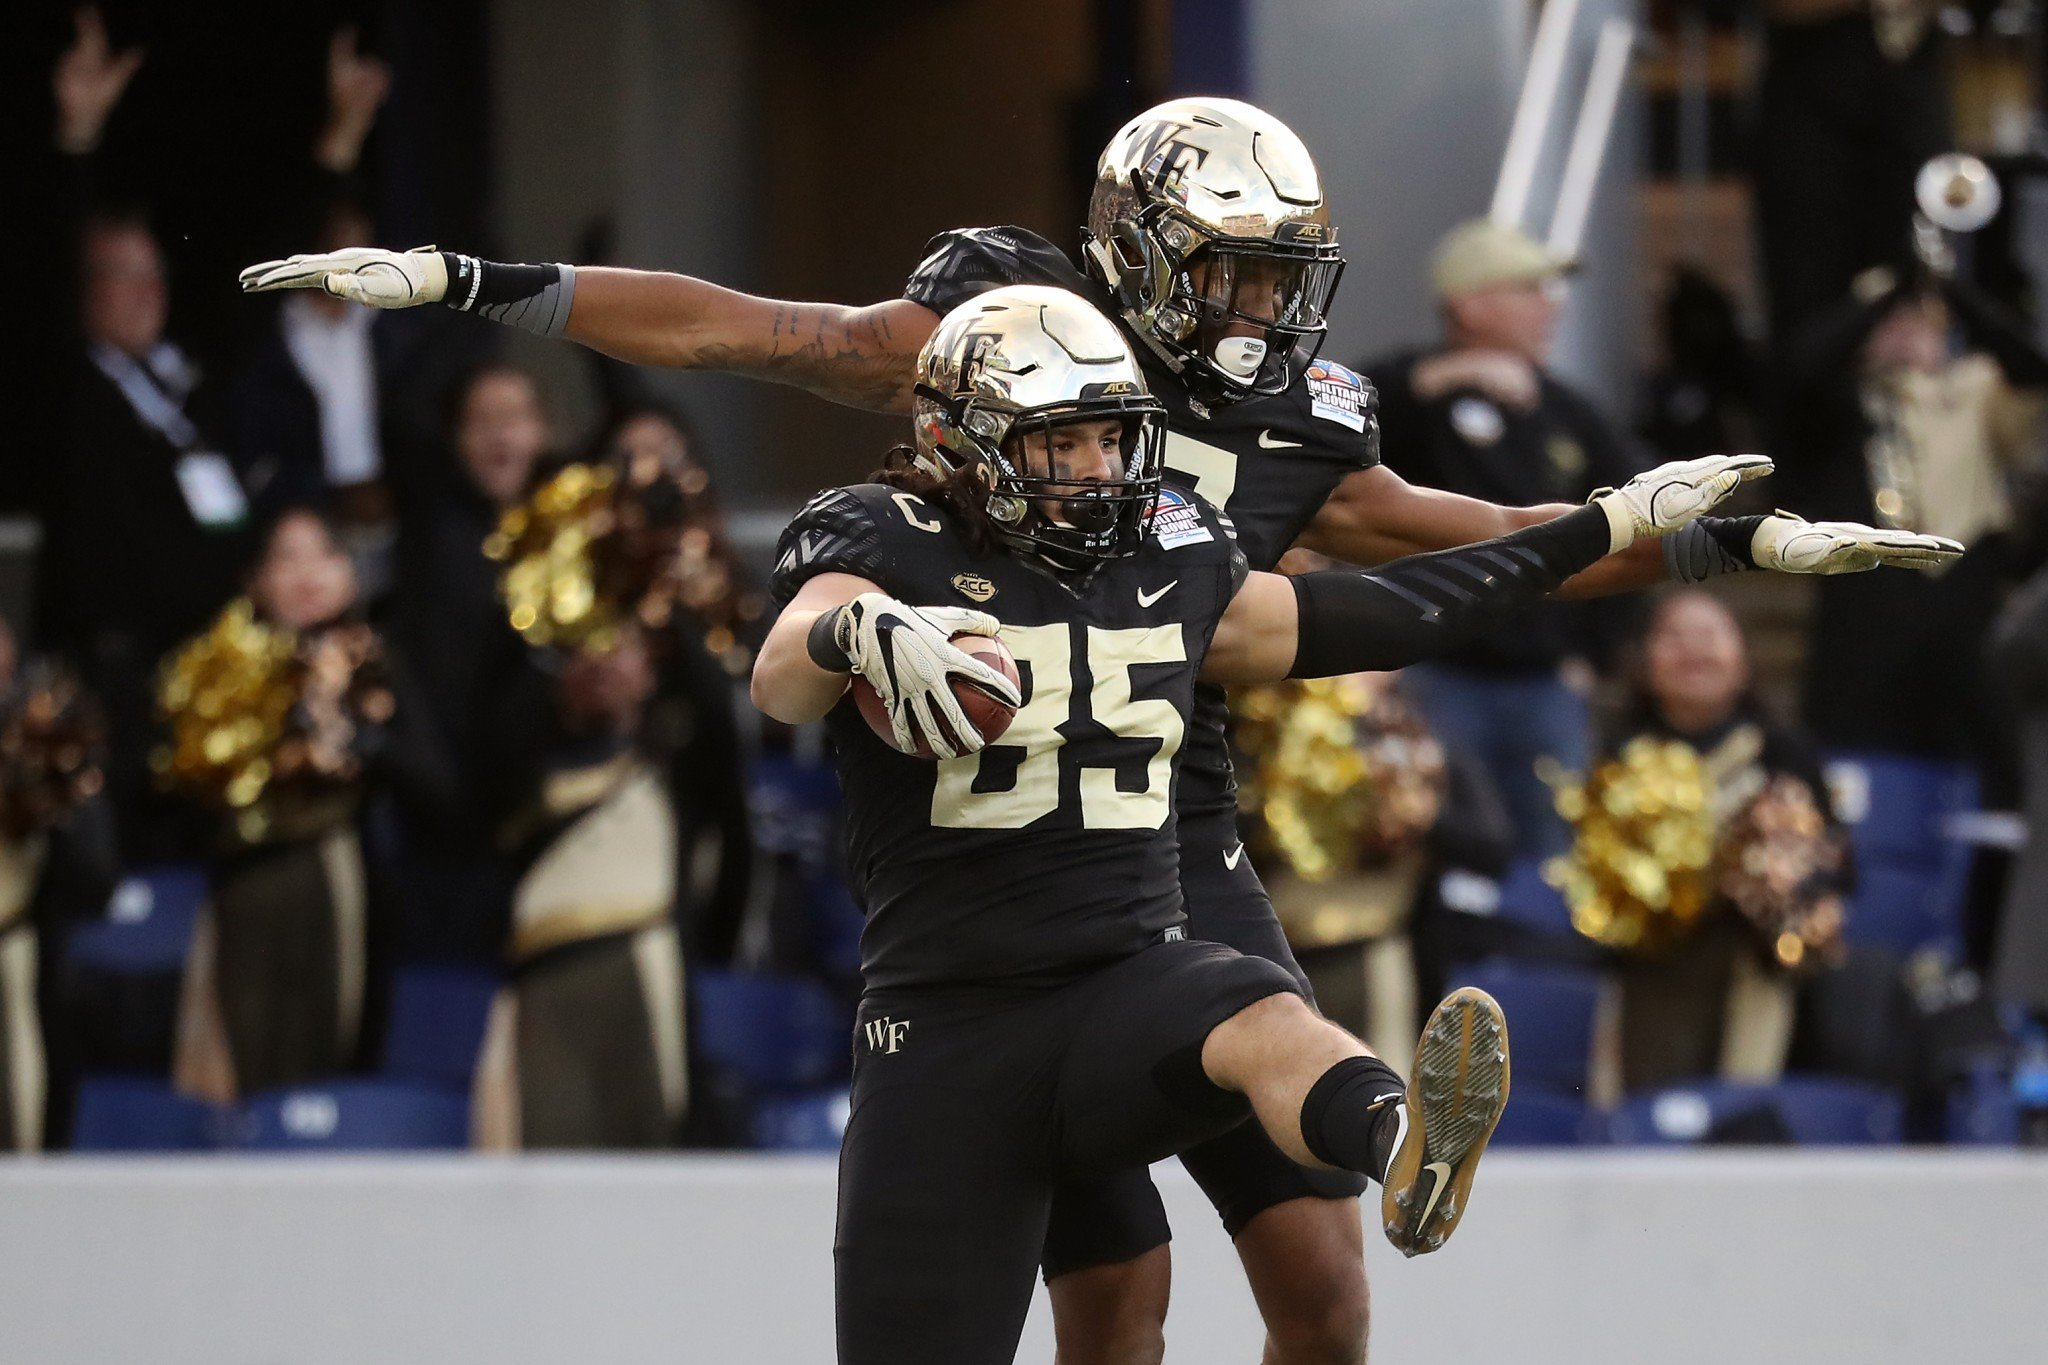 Wake Forest's 7-6 record is the school's first winning season since 2008. (Getty)